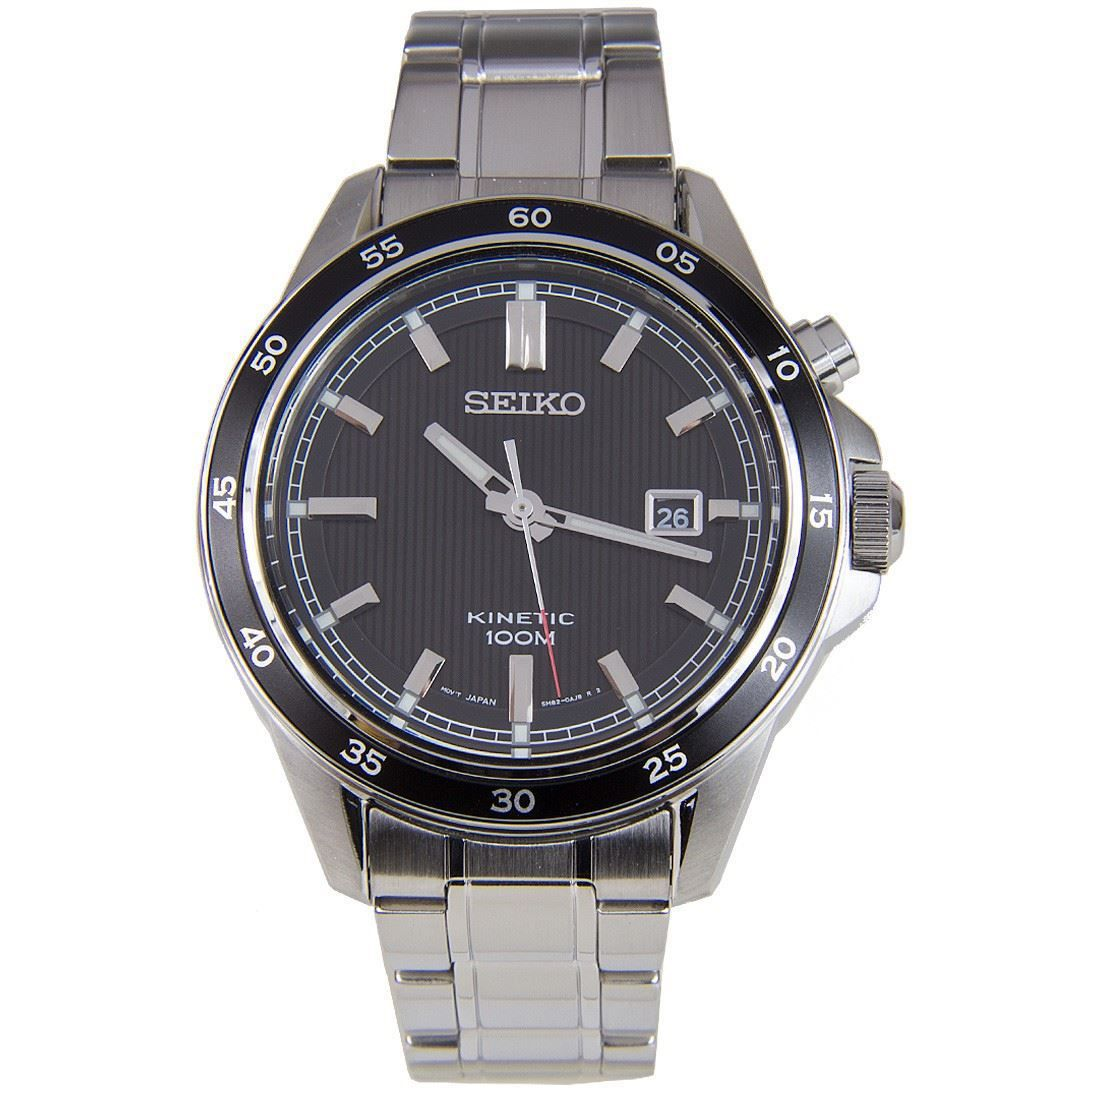 Seiko SKA641P1 SKA641 Black Dial Mens Dress Watch